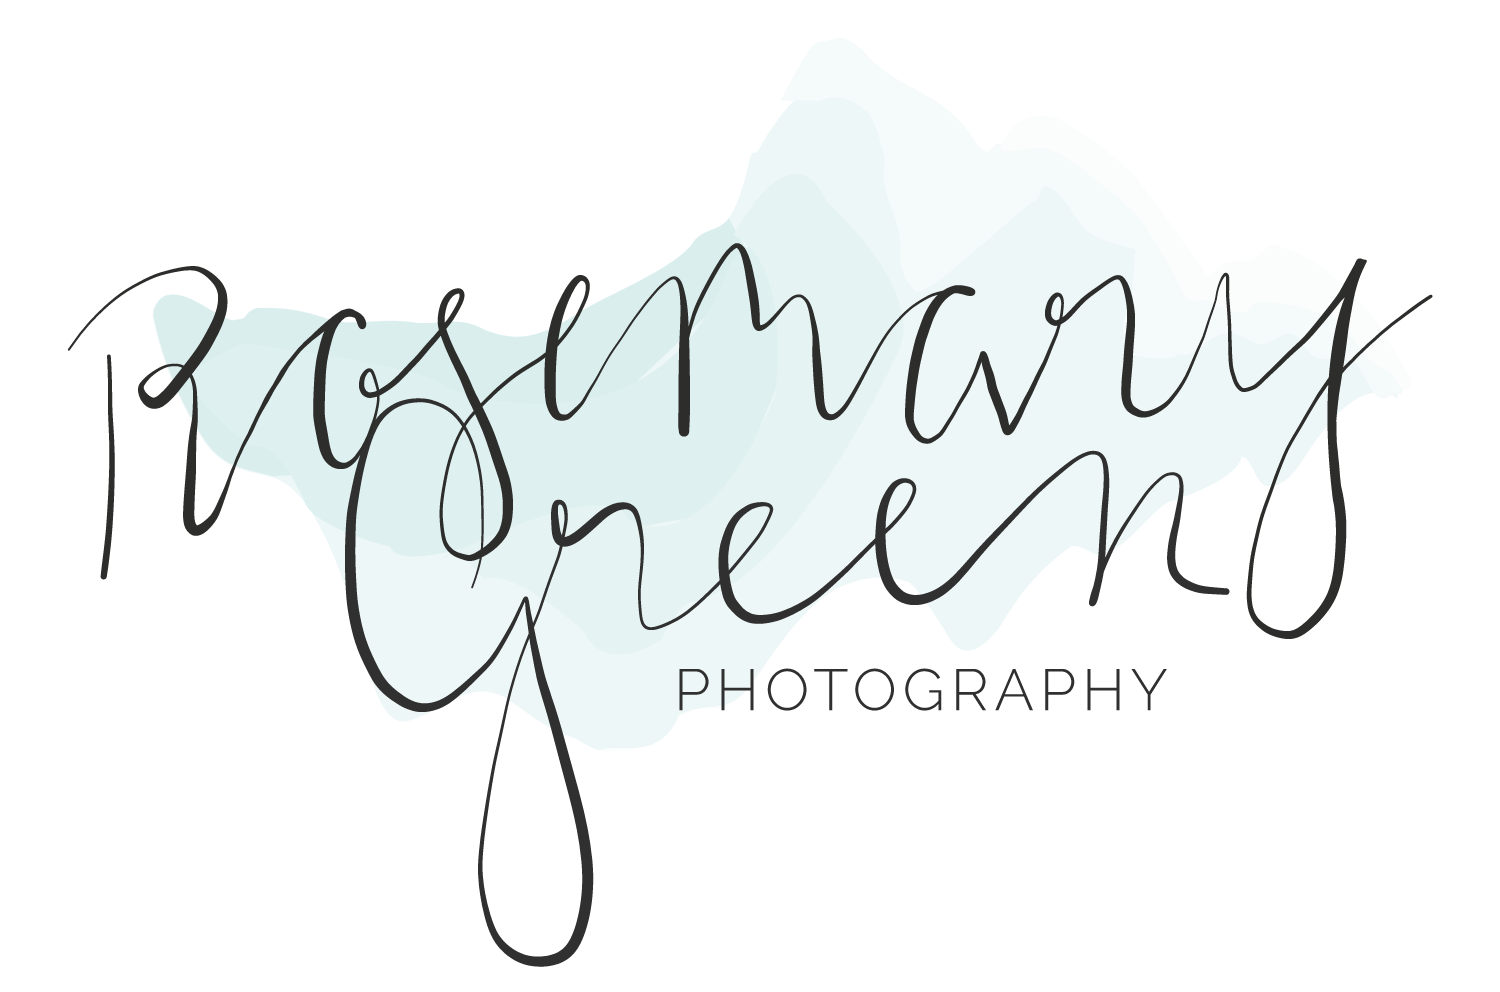 Rosemary Green Photography